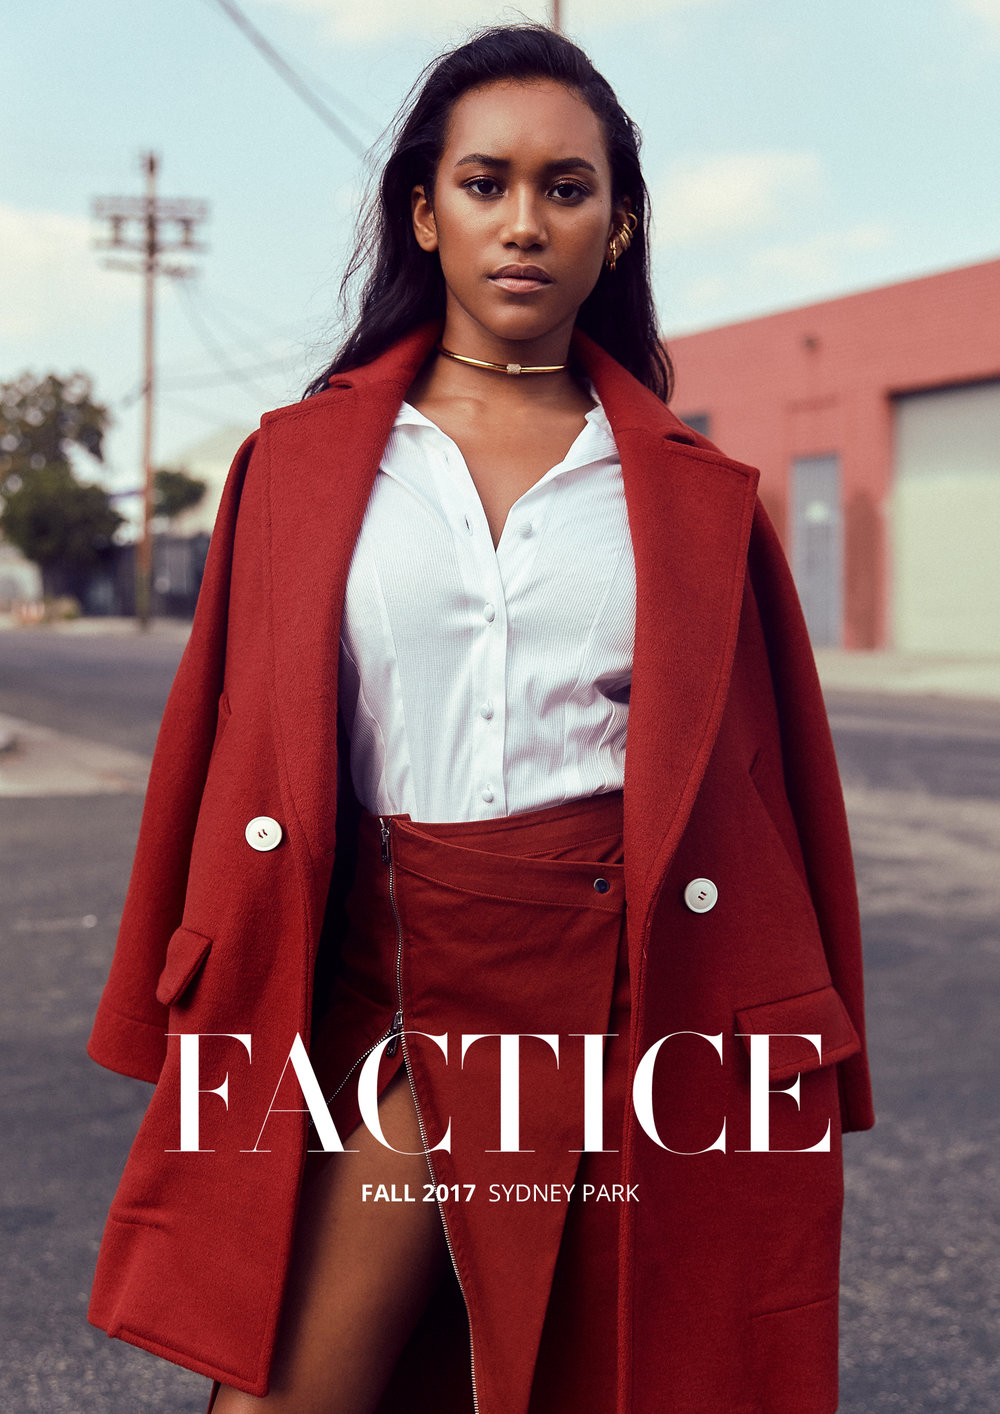 FacTice magazine - SEPTEMBER 2017